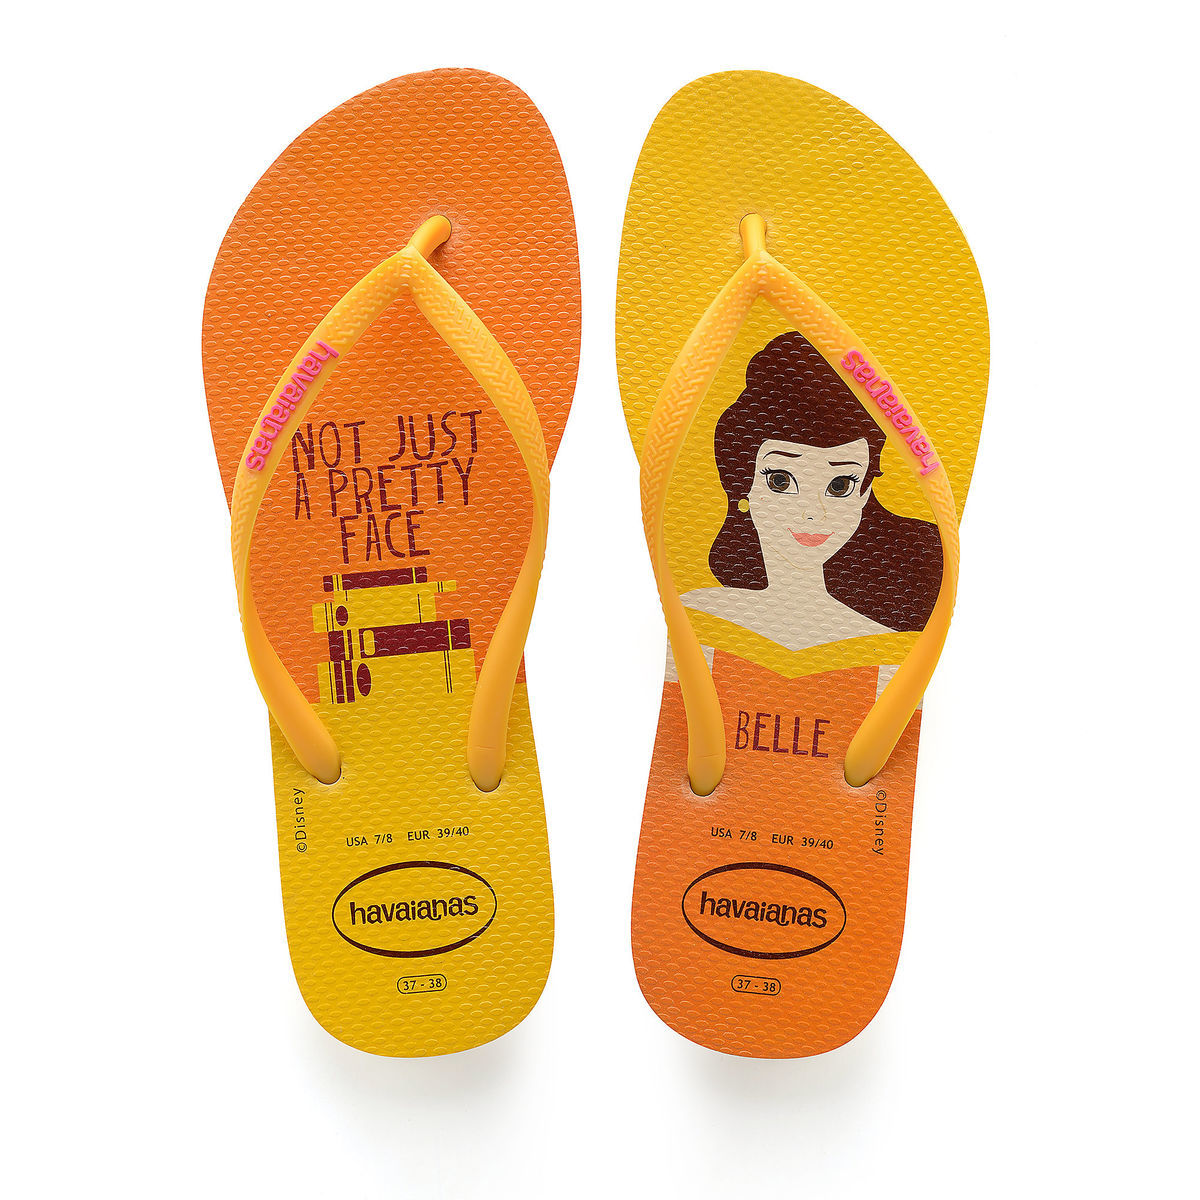 f7d7a61bb82d Product Image of Belle Flip Flops for Women by Havaianas   2